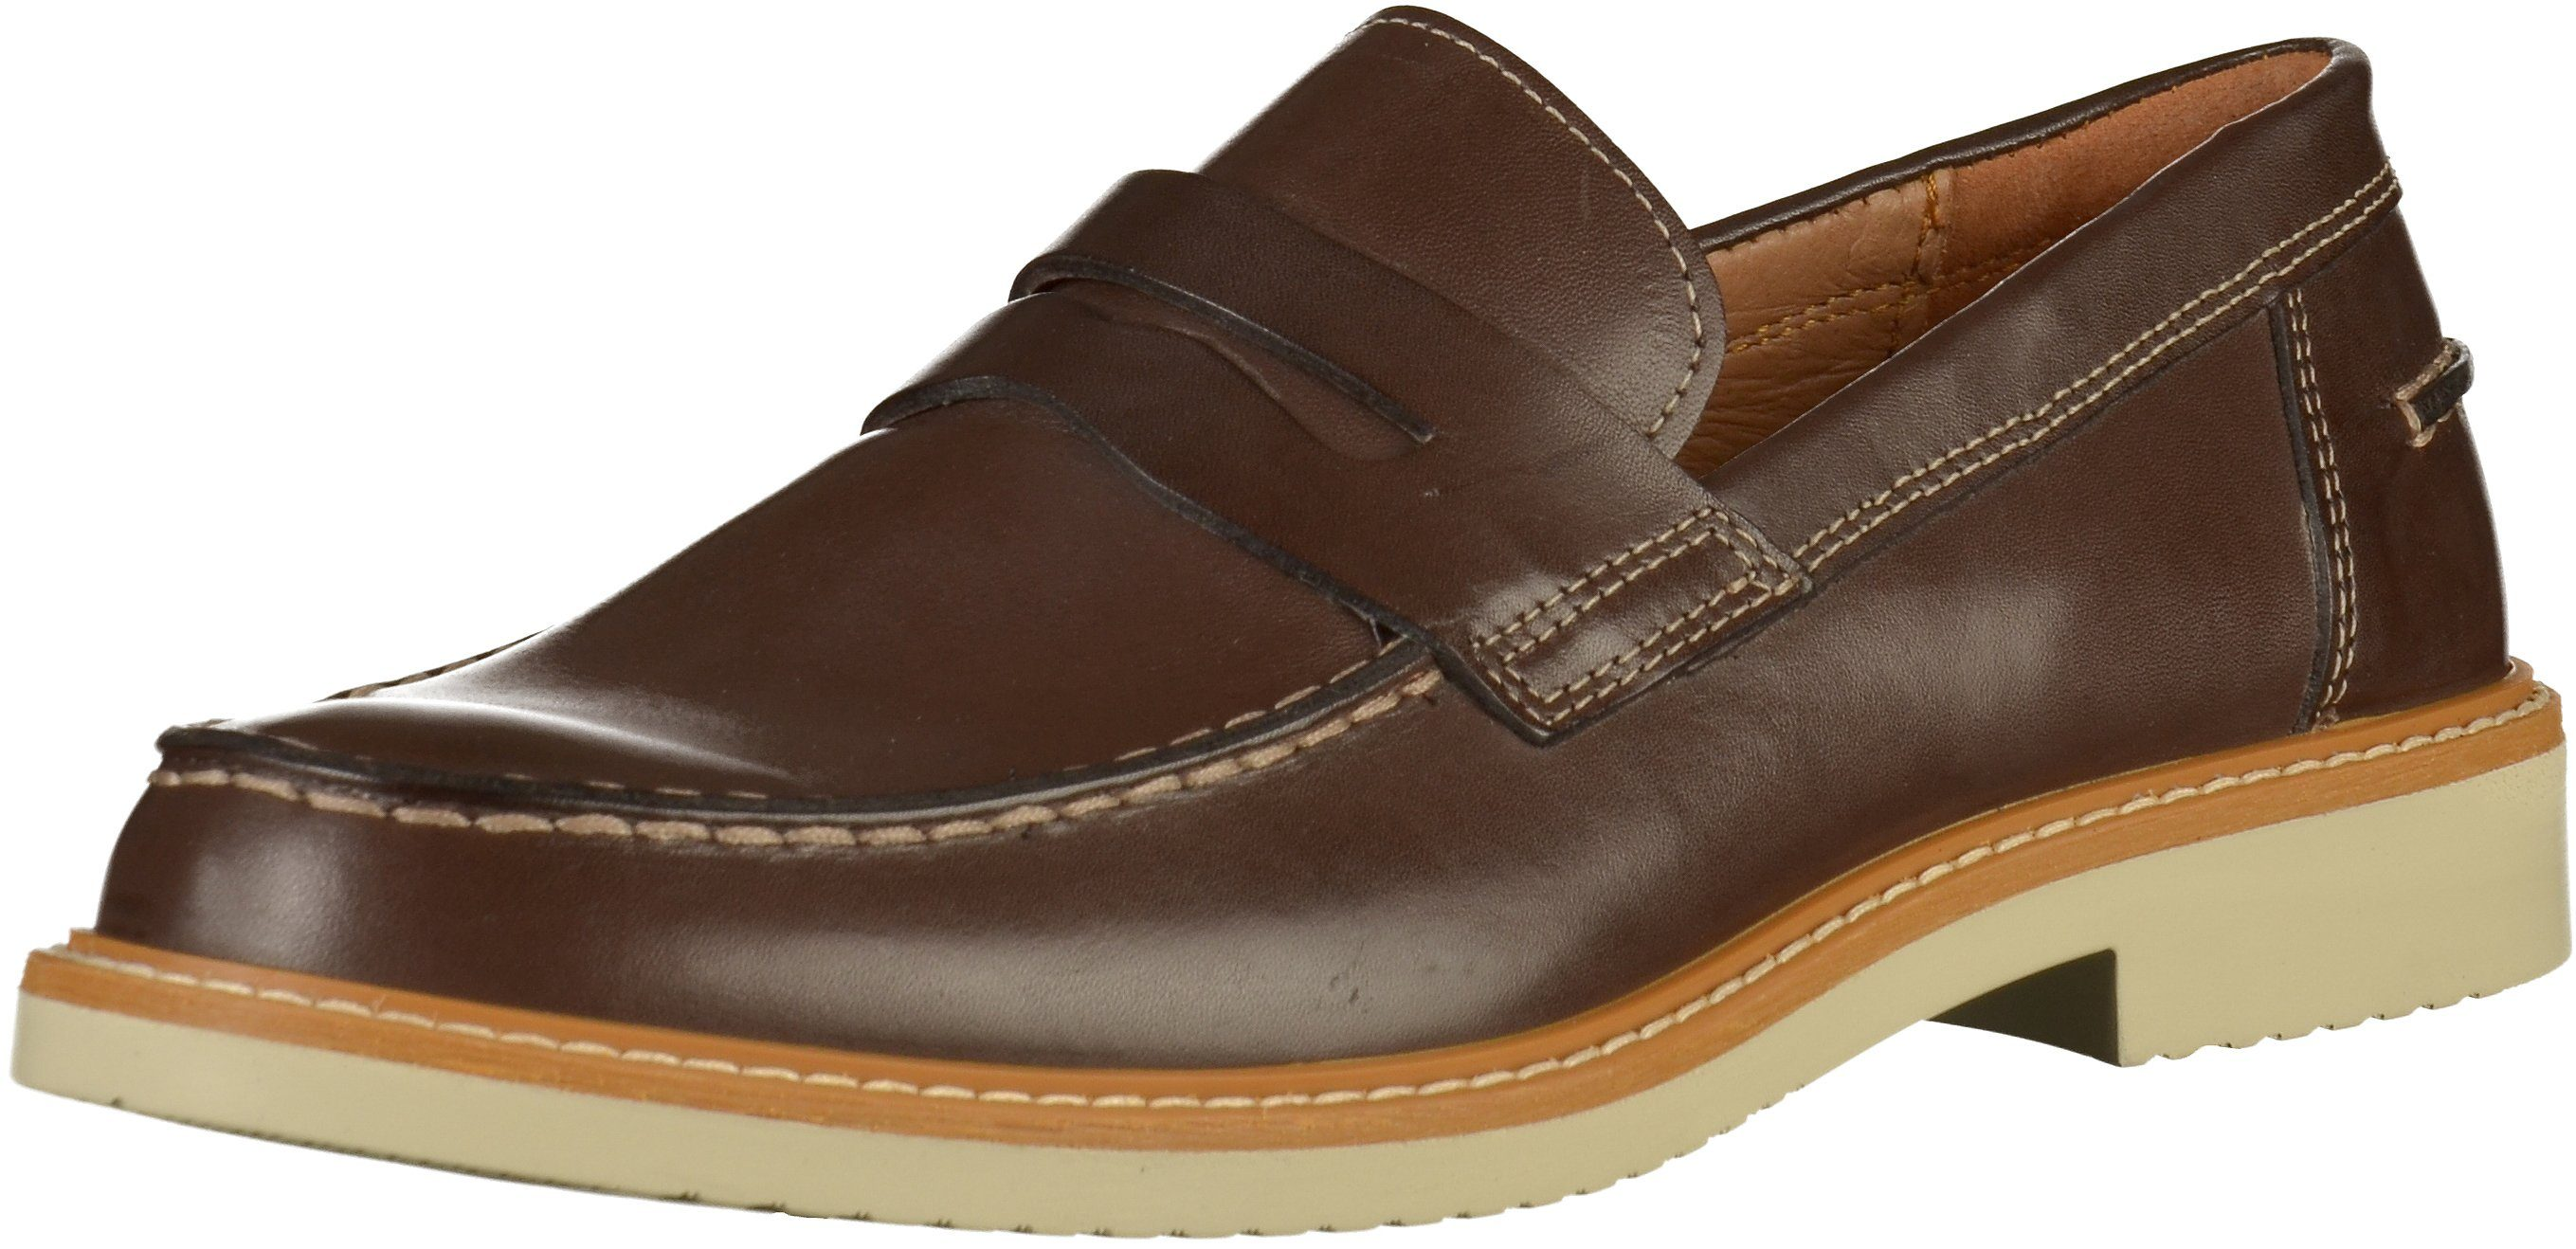 igi & co -  Slipper Leder